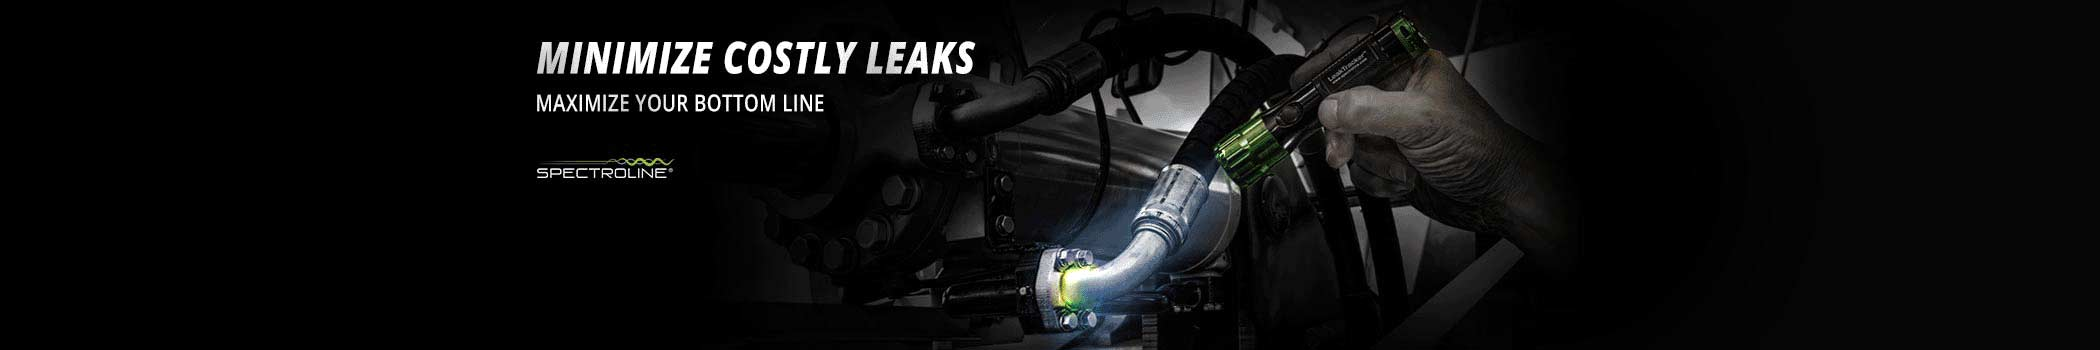 Spectroline Industrial Fluorescent Leak Detection